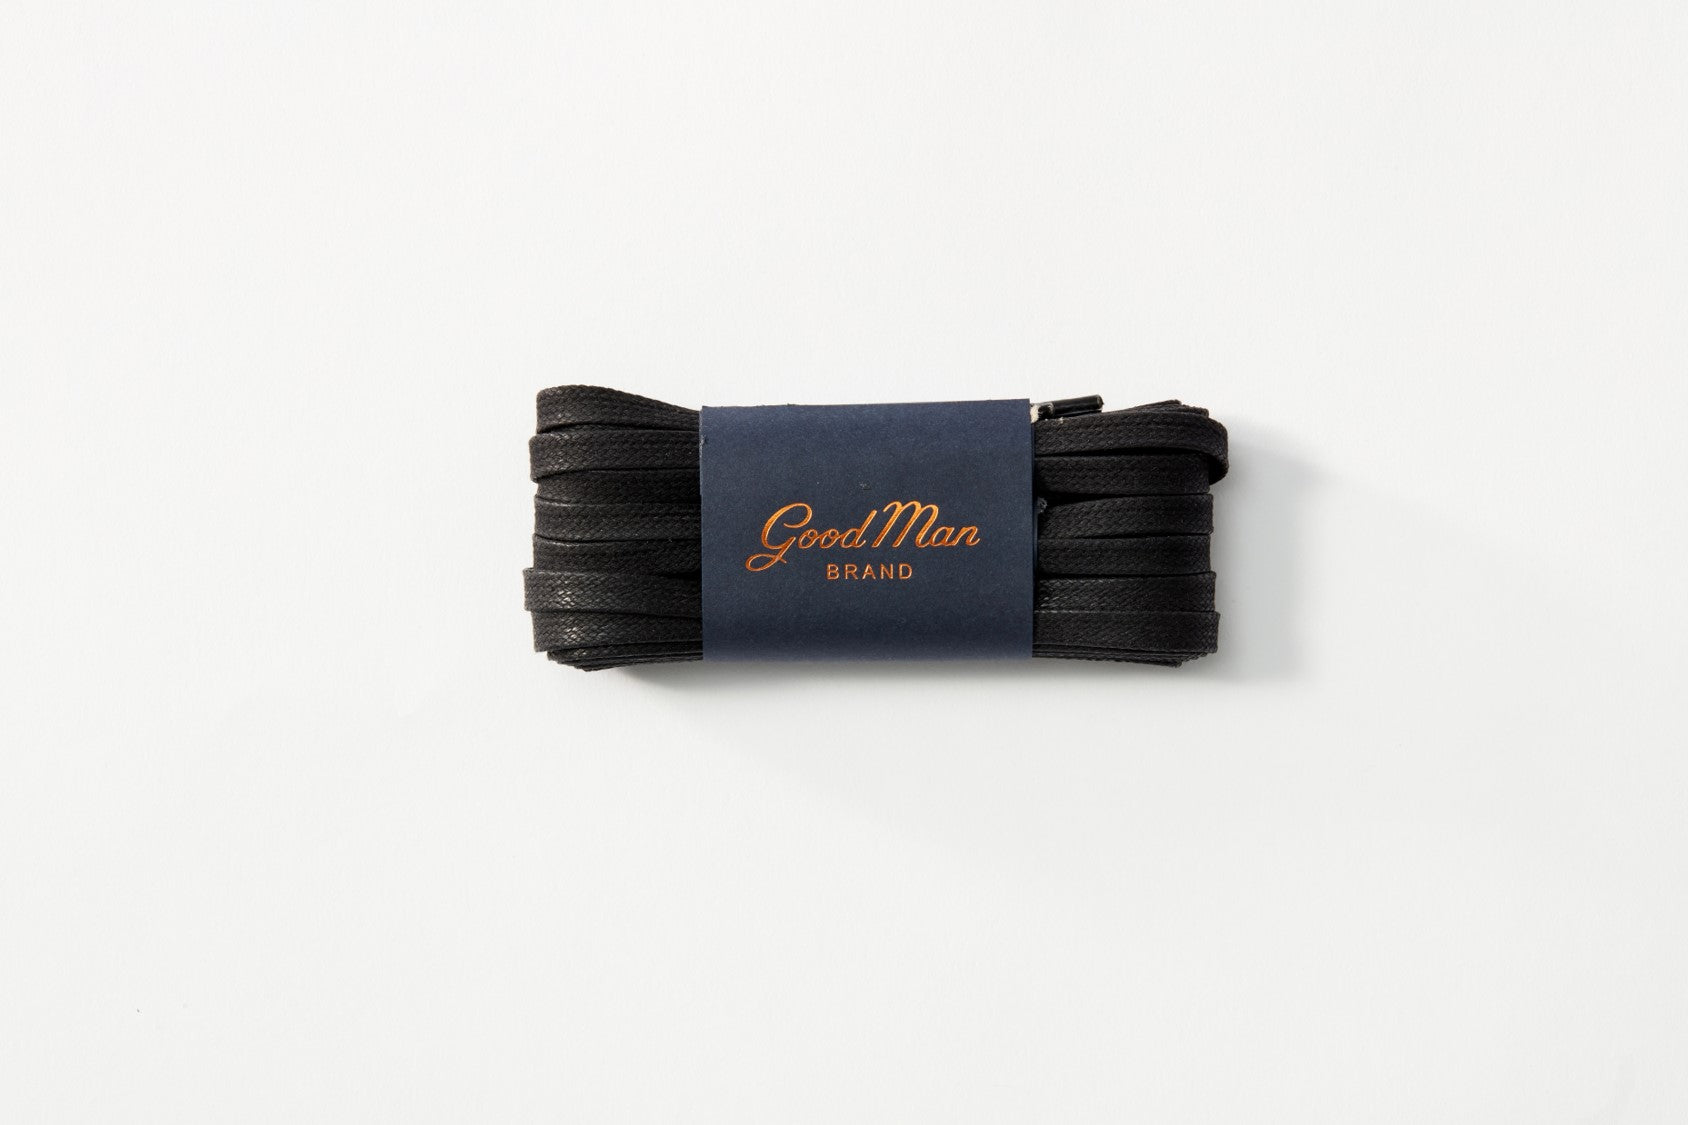 Waxed Cotton Laces for Sneaker 3 Pack - Black